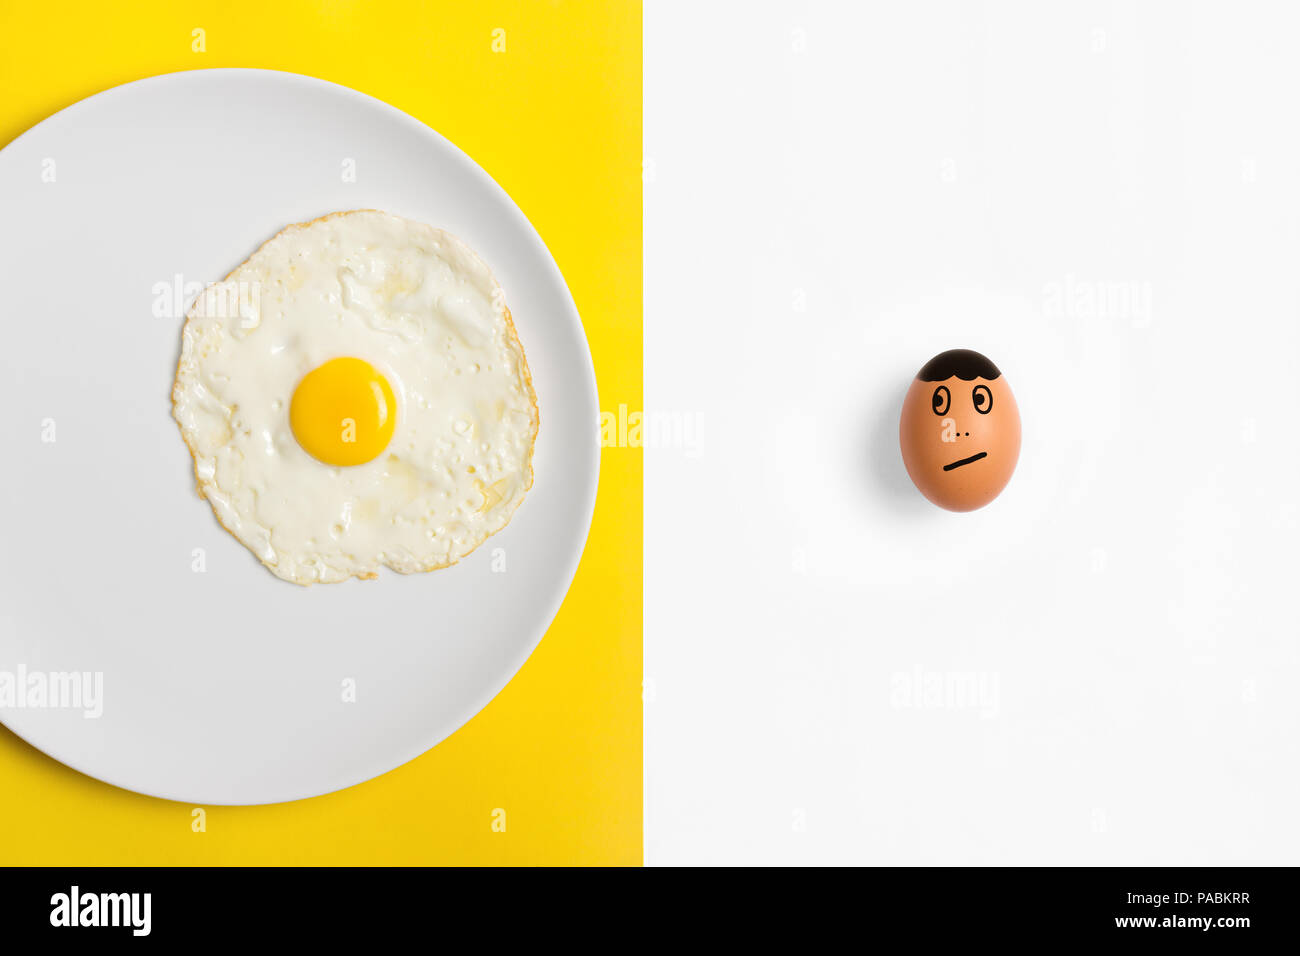 Fried egg on plate with  an uncooked egg  looking worried he's next. Two tone split color background flat lay image. Stock Photo